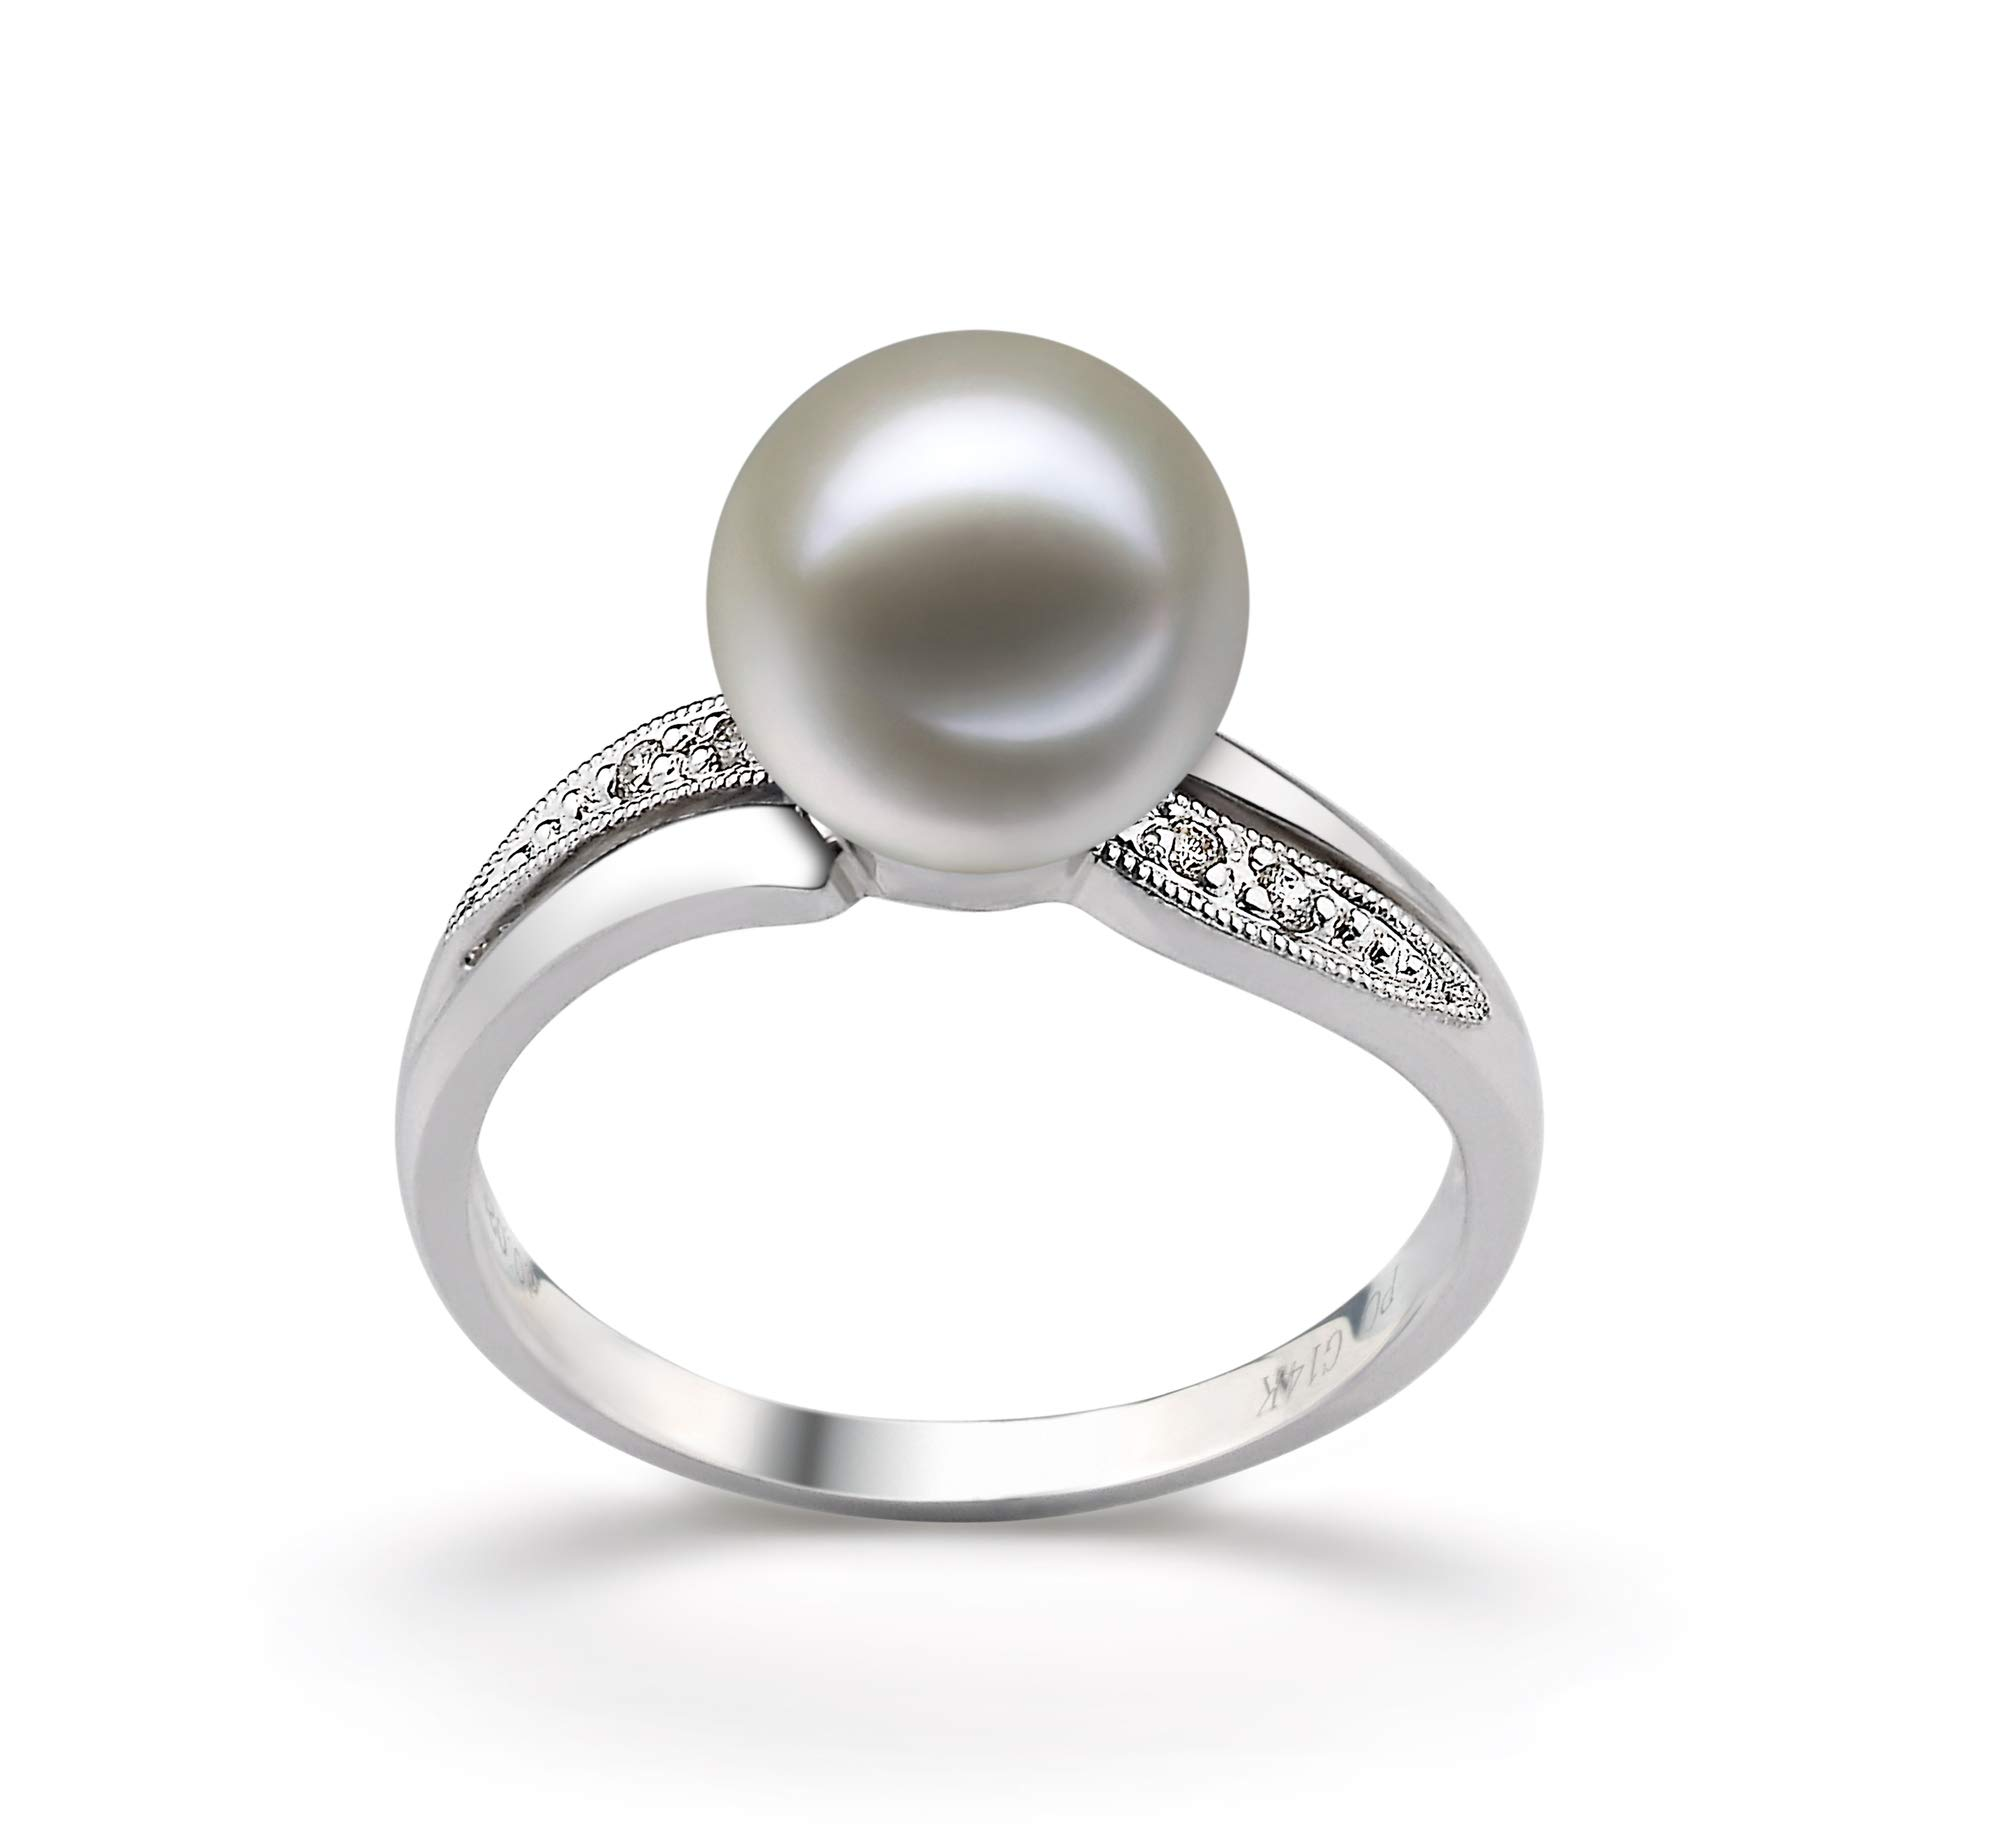 Caroline White 9-10mm AAAA Quality Freshwater 14K White Gold Cultured Pearl Ring For Women - Size-7